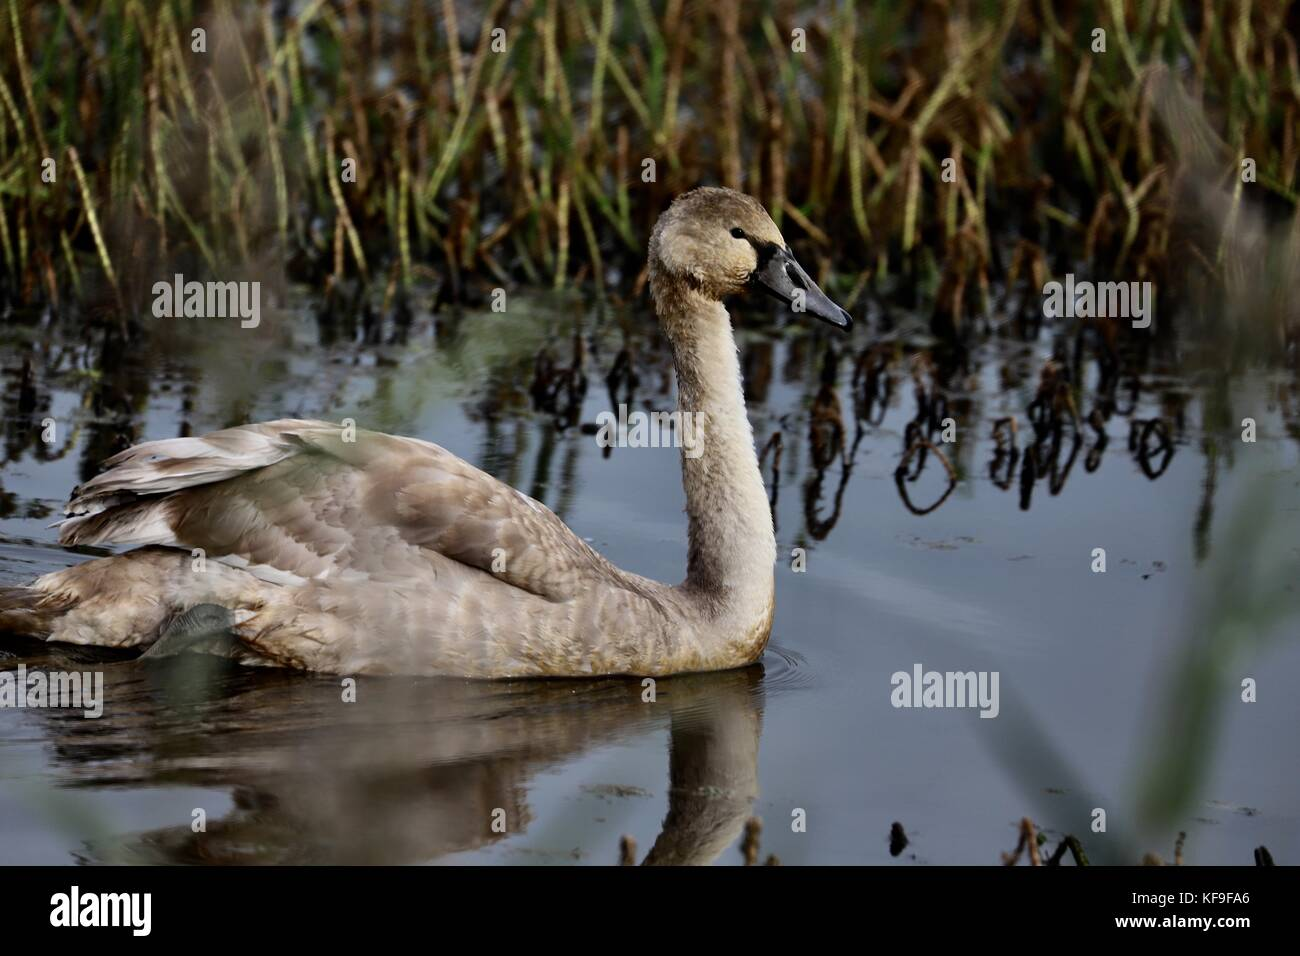 a-cygnet-mute-young-swan-in-the-water-at